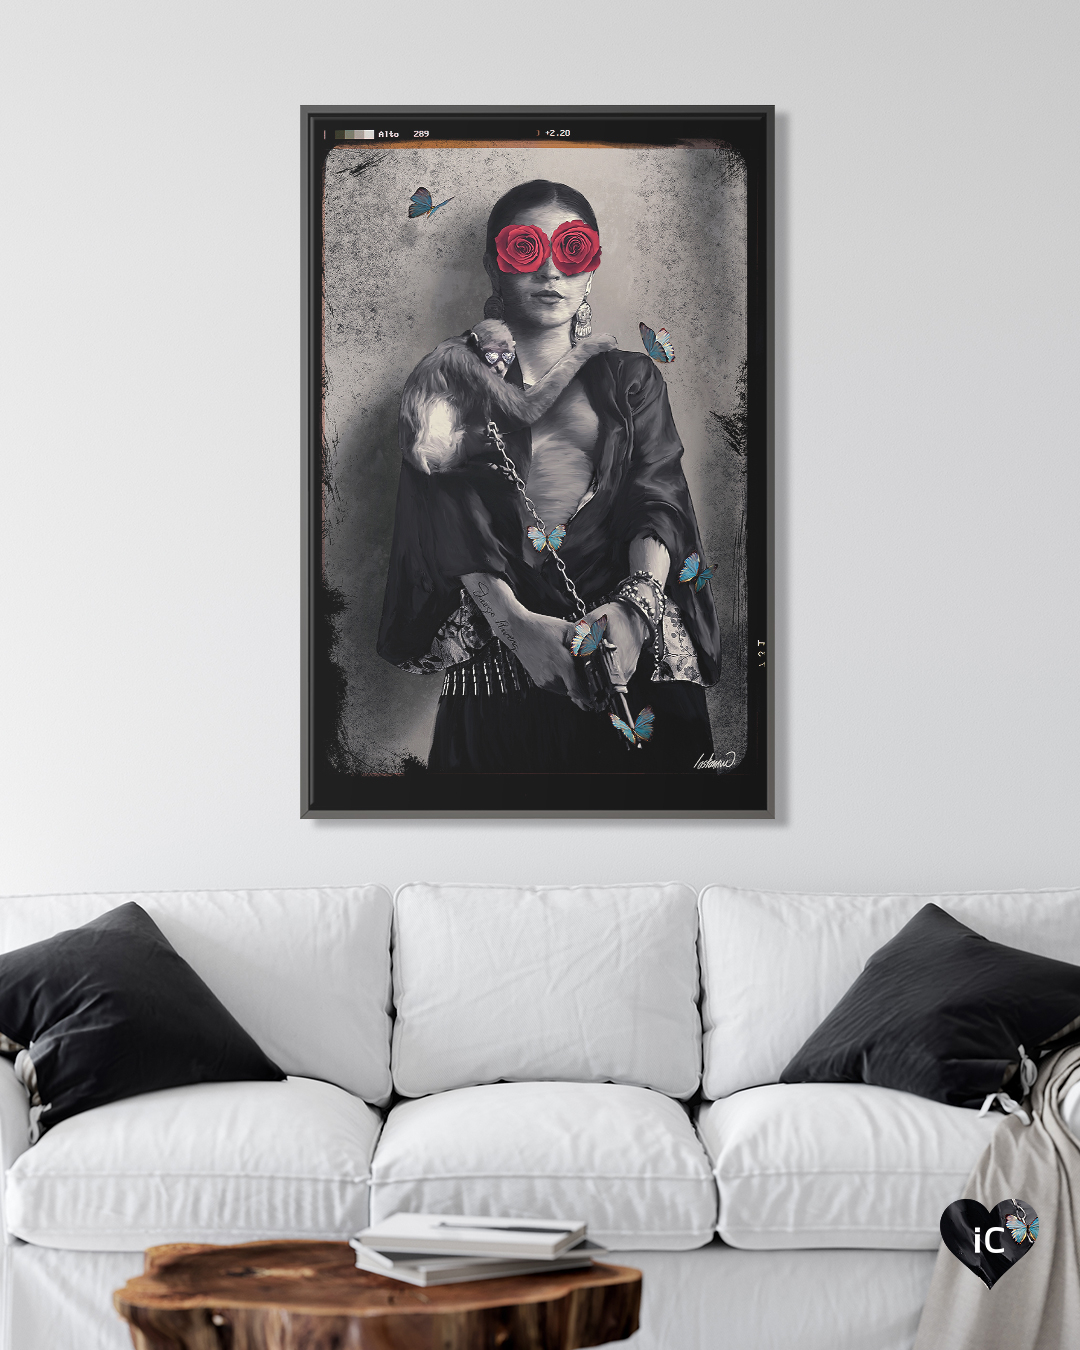 """""""Frida Kahlo My Treasure"""" by Lostanaw shows a black and white picture of Frida Kahlo with red roses covering her eyes and a monkey holding onto her while attached to a chain."""